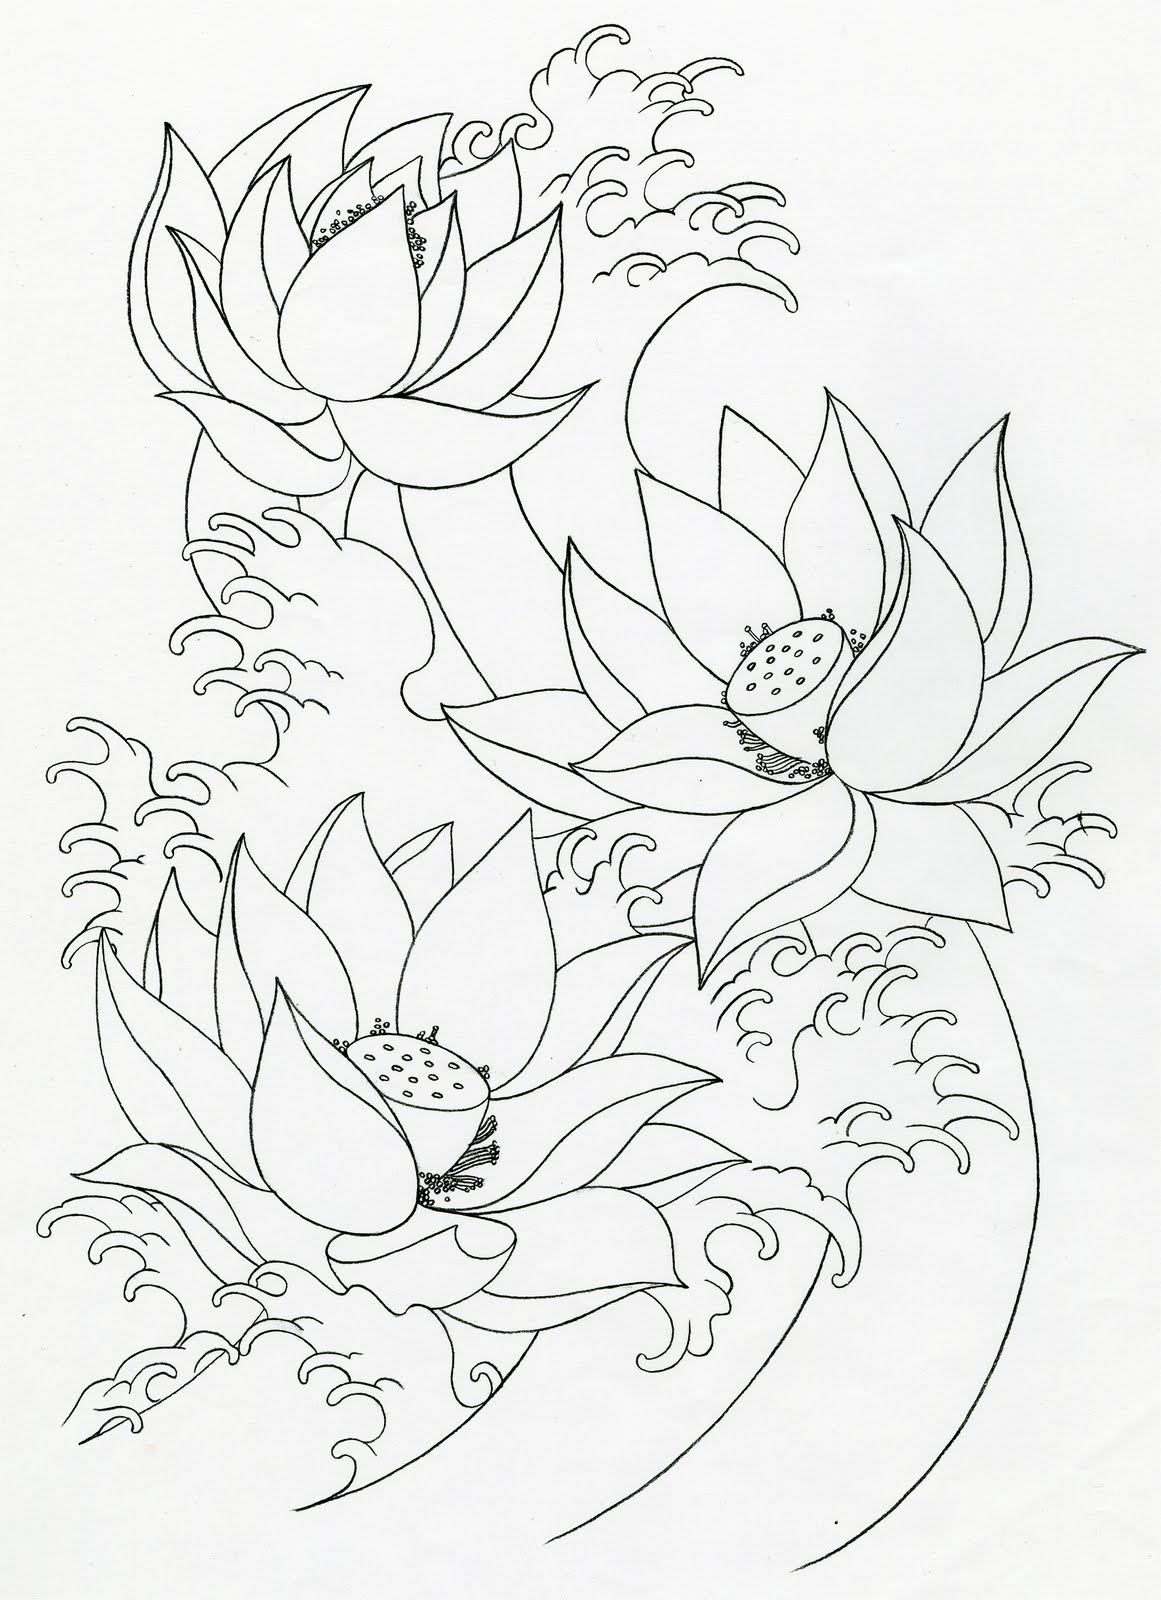 Mike's TATTOO design: Lotus